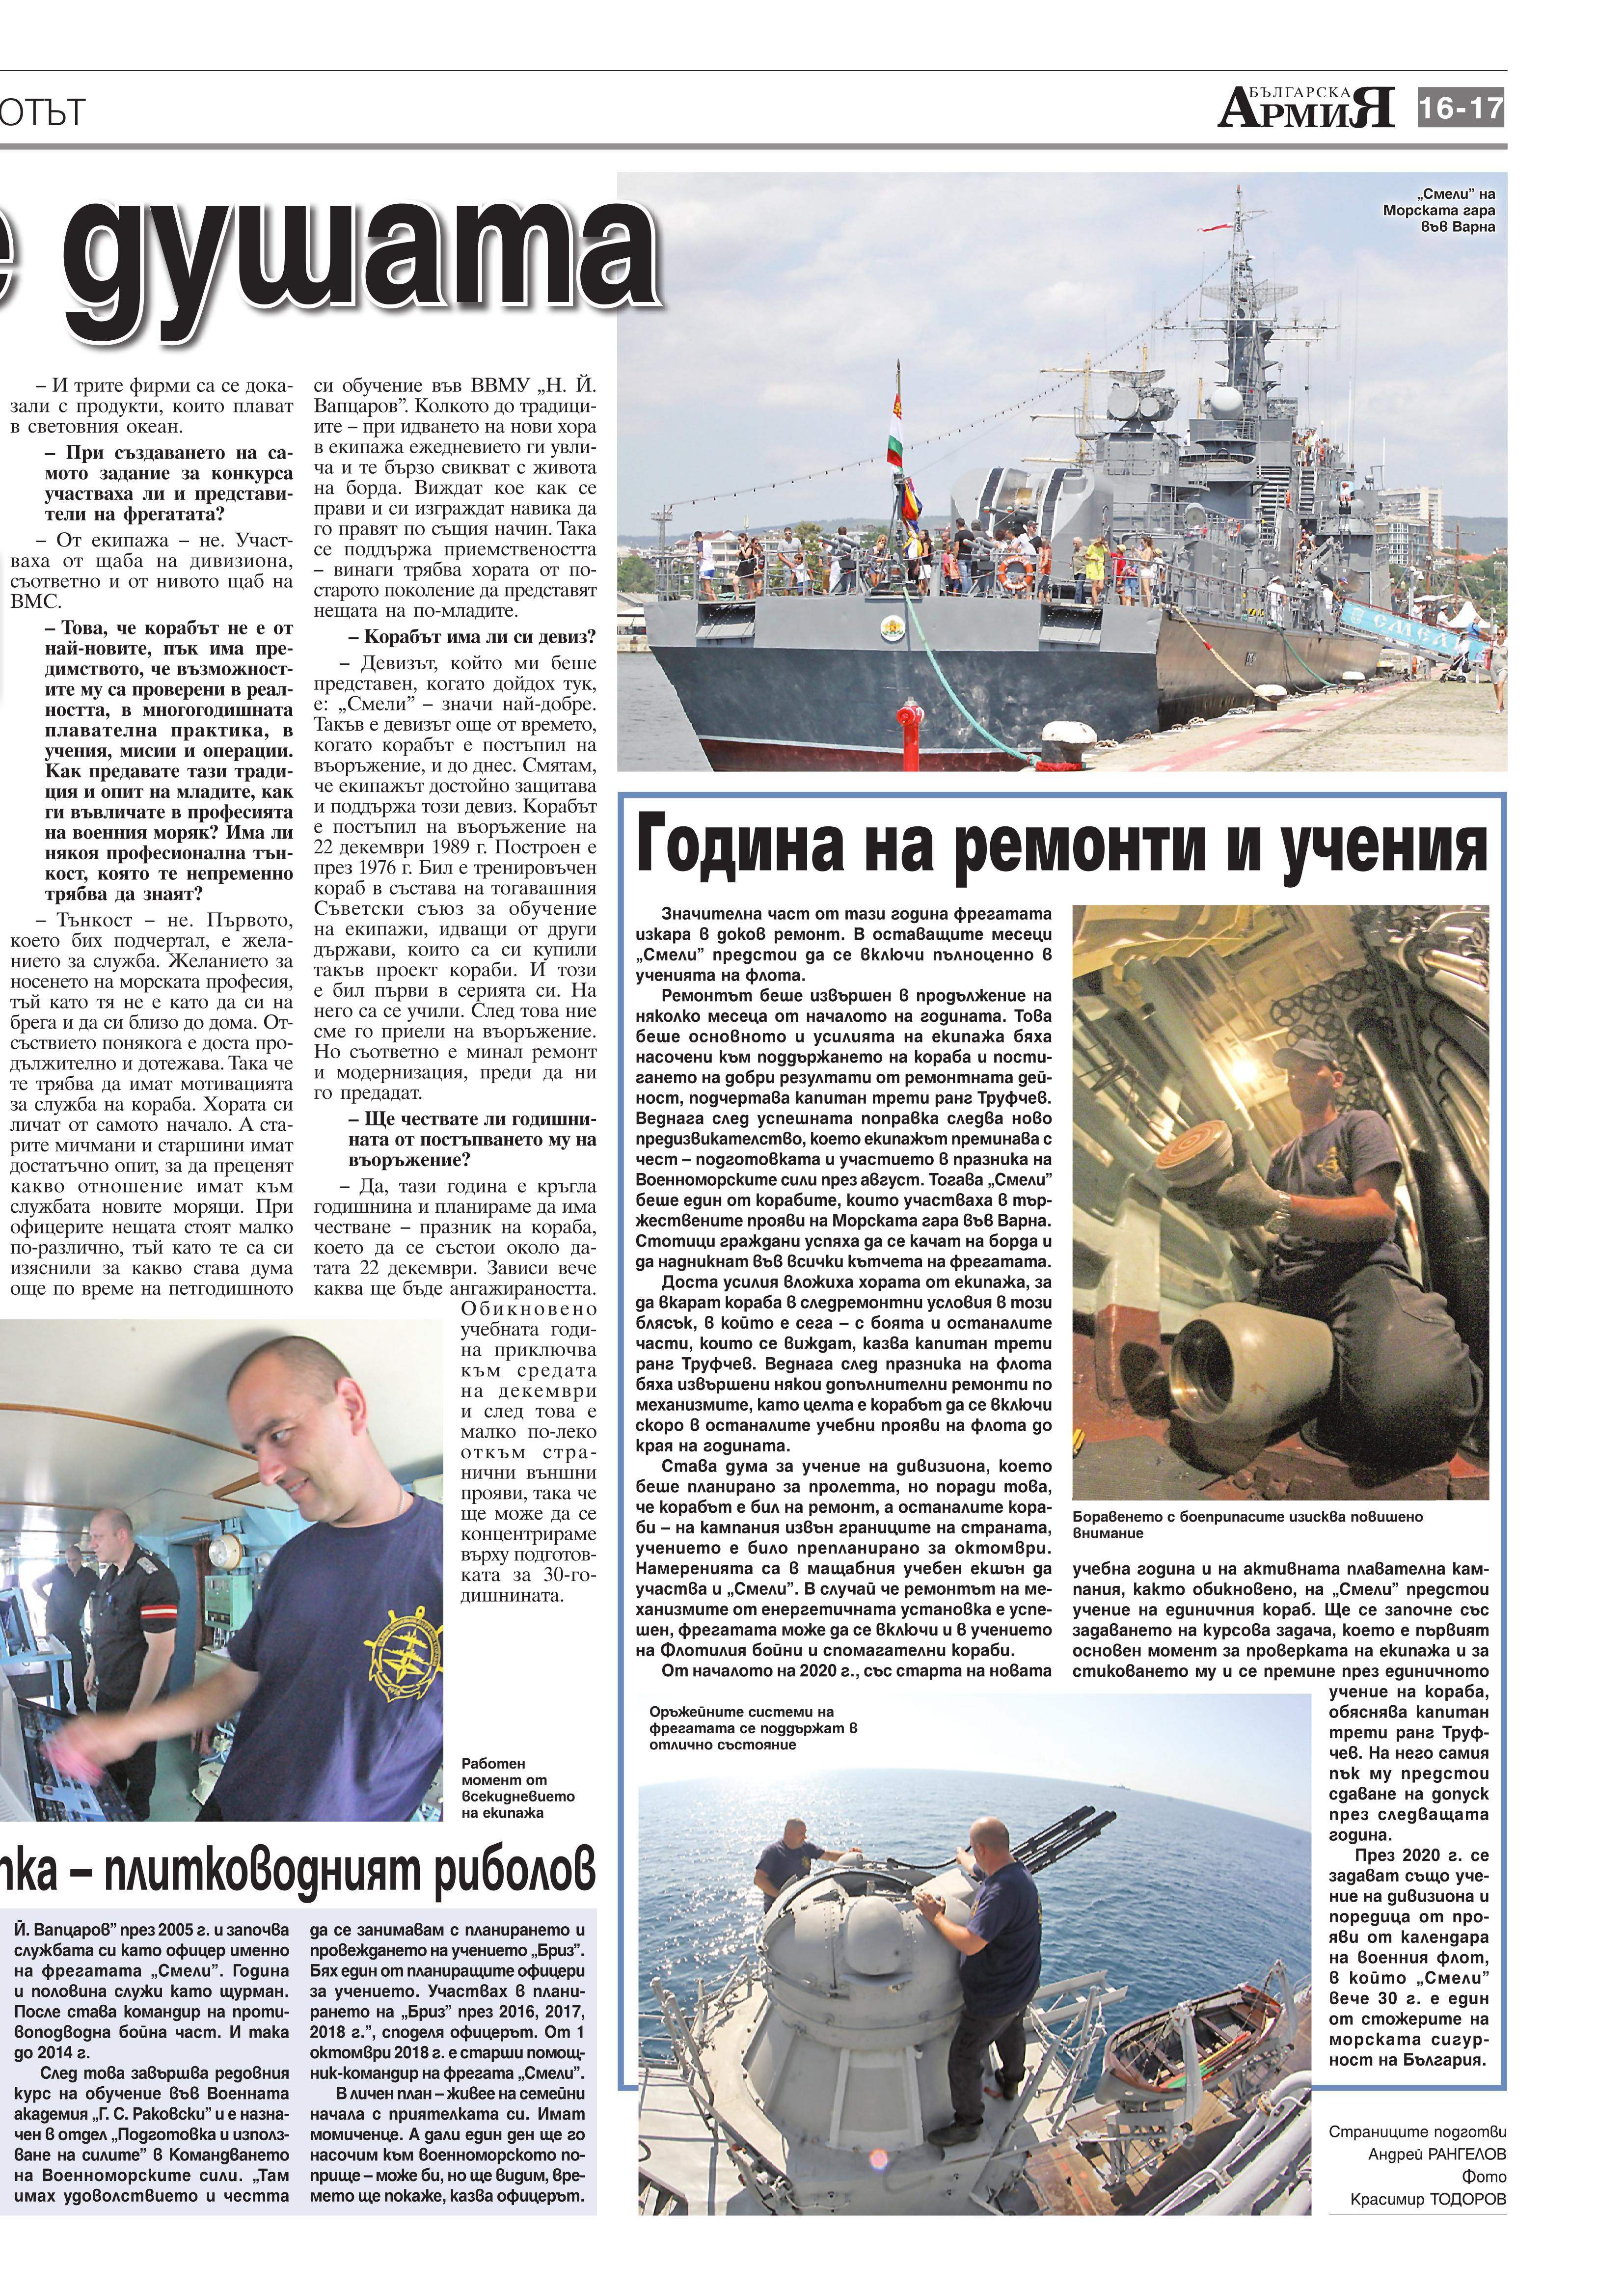 https://armymedia.bg/wp-content/uploads/2015/06/17.page1_-109.jpg